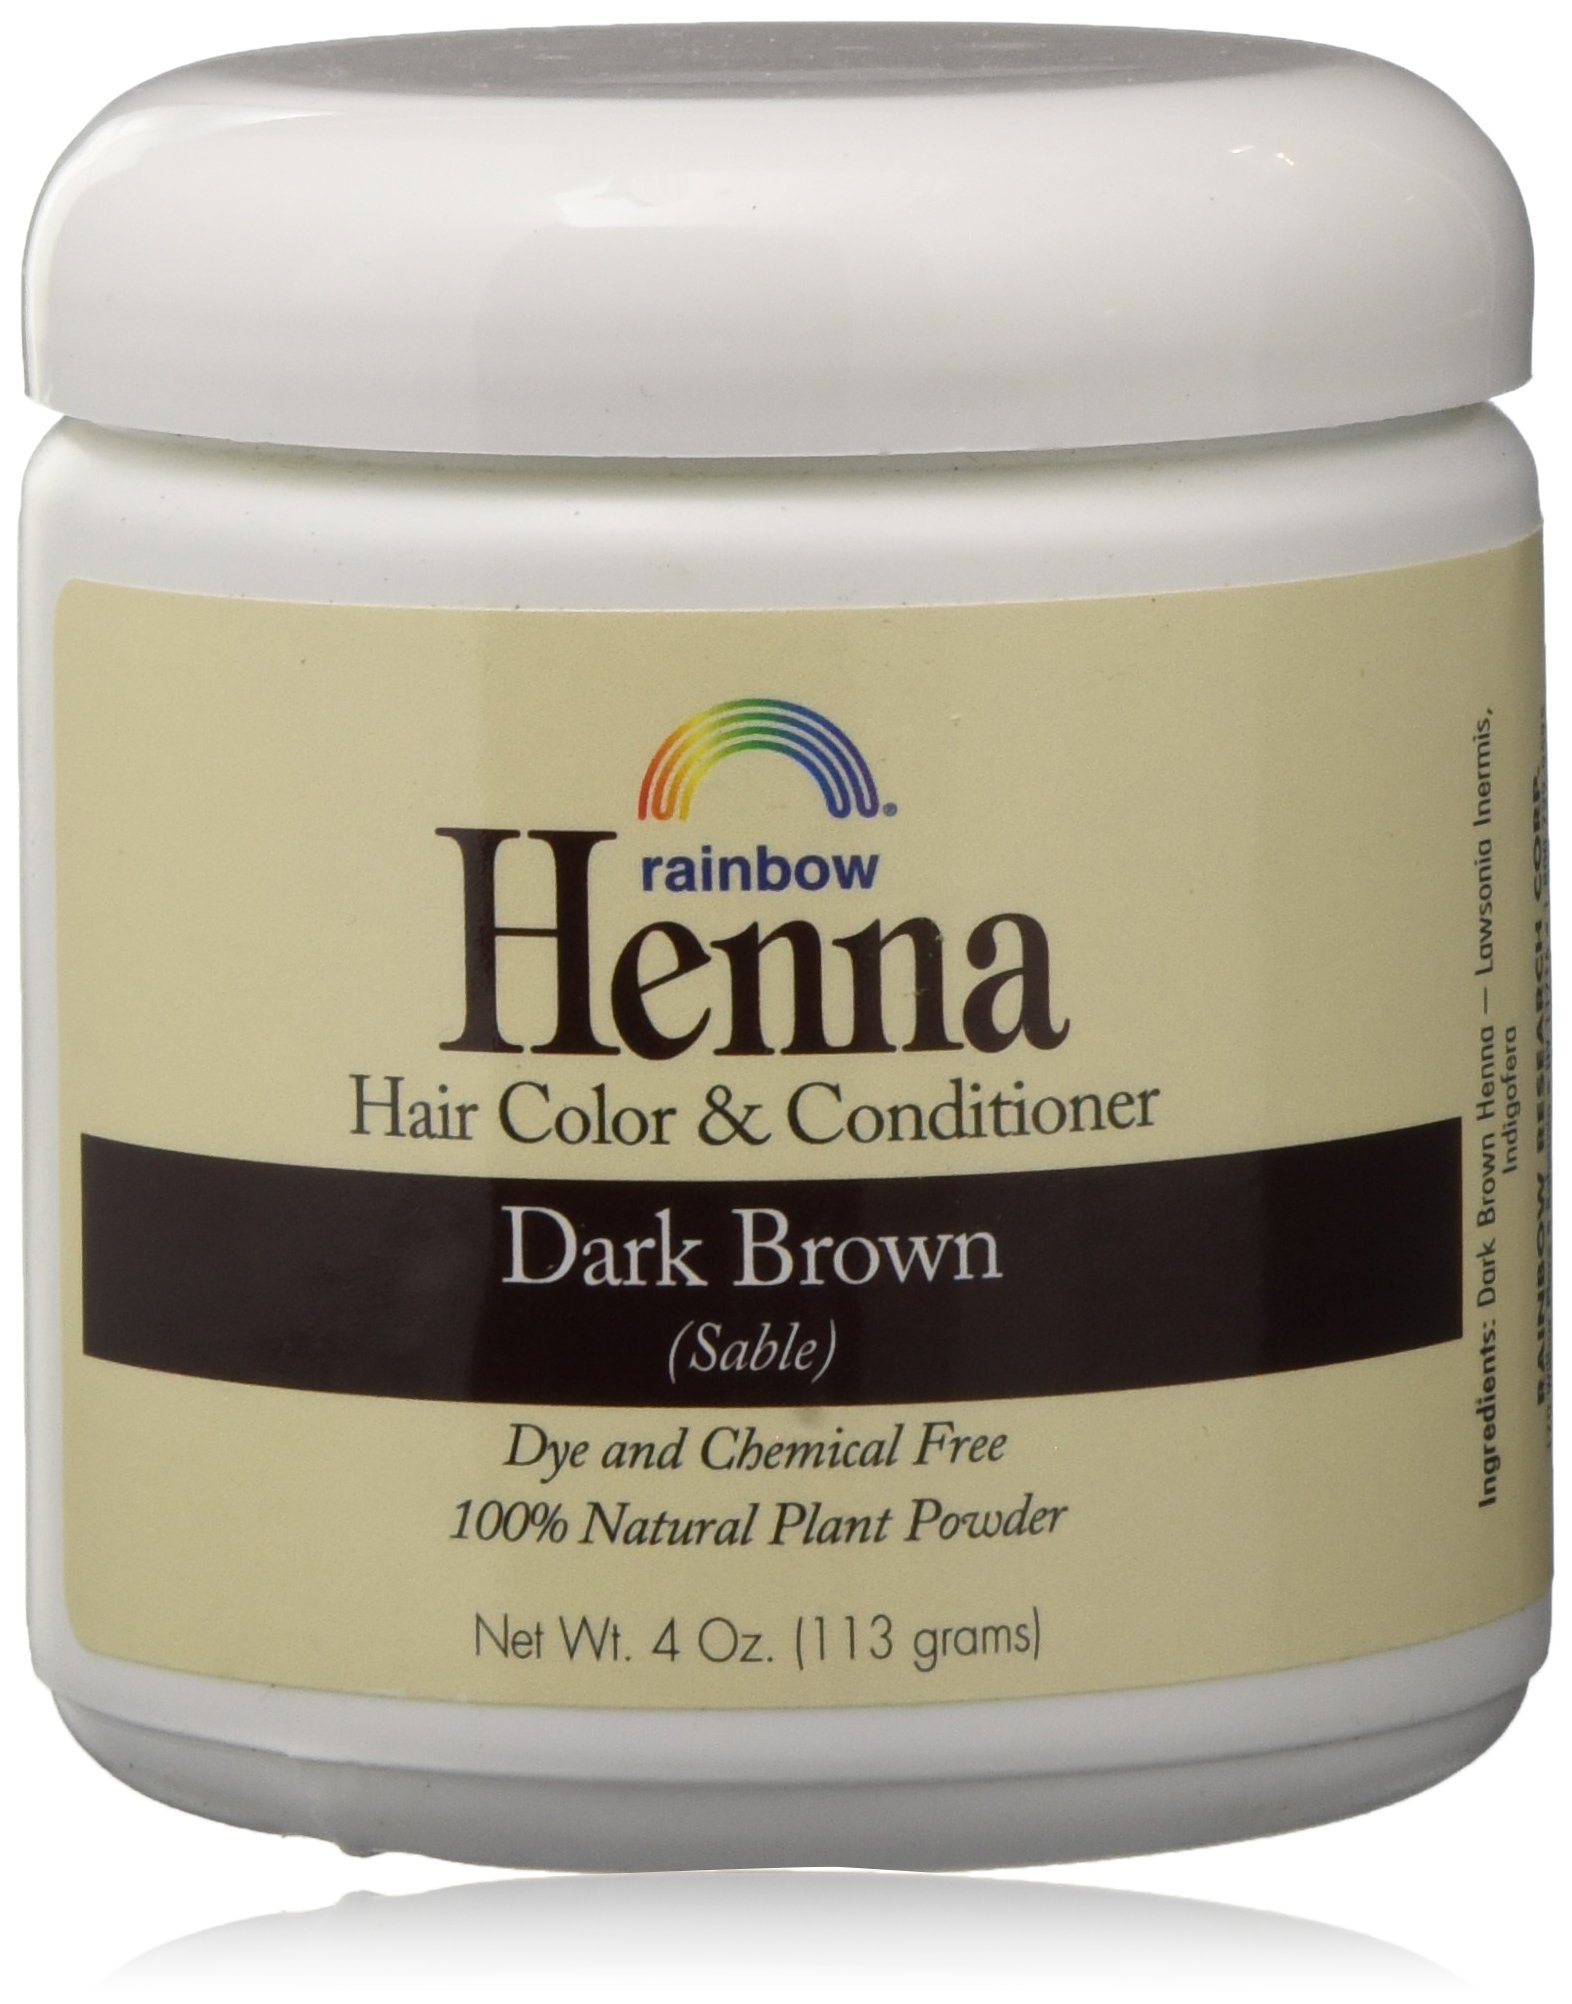 Rainbow Henna Persian Dark Brown Hair Color 4 Oz, (2 pack)